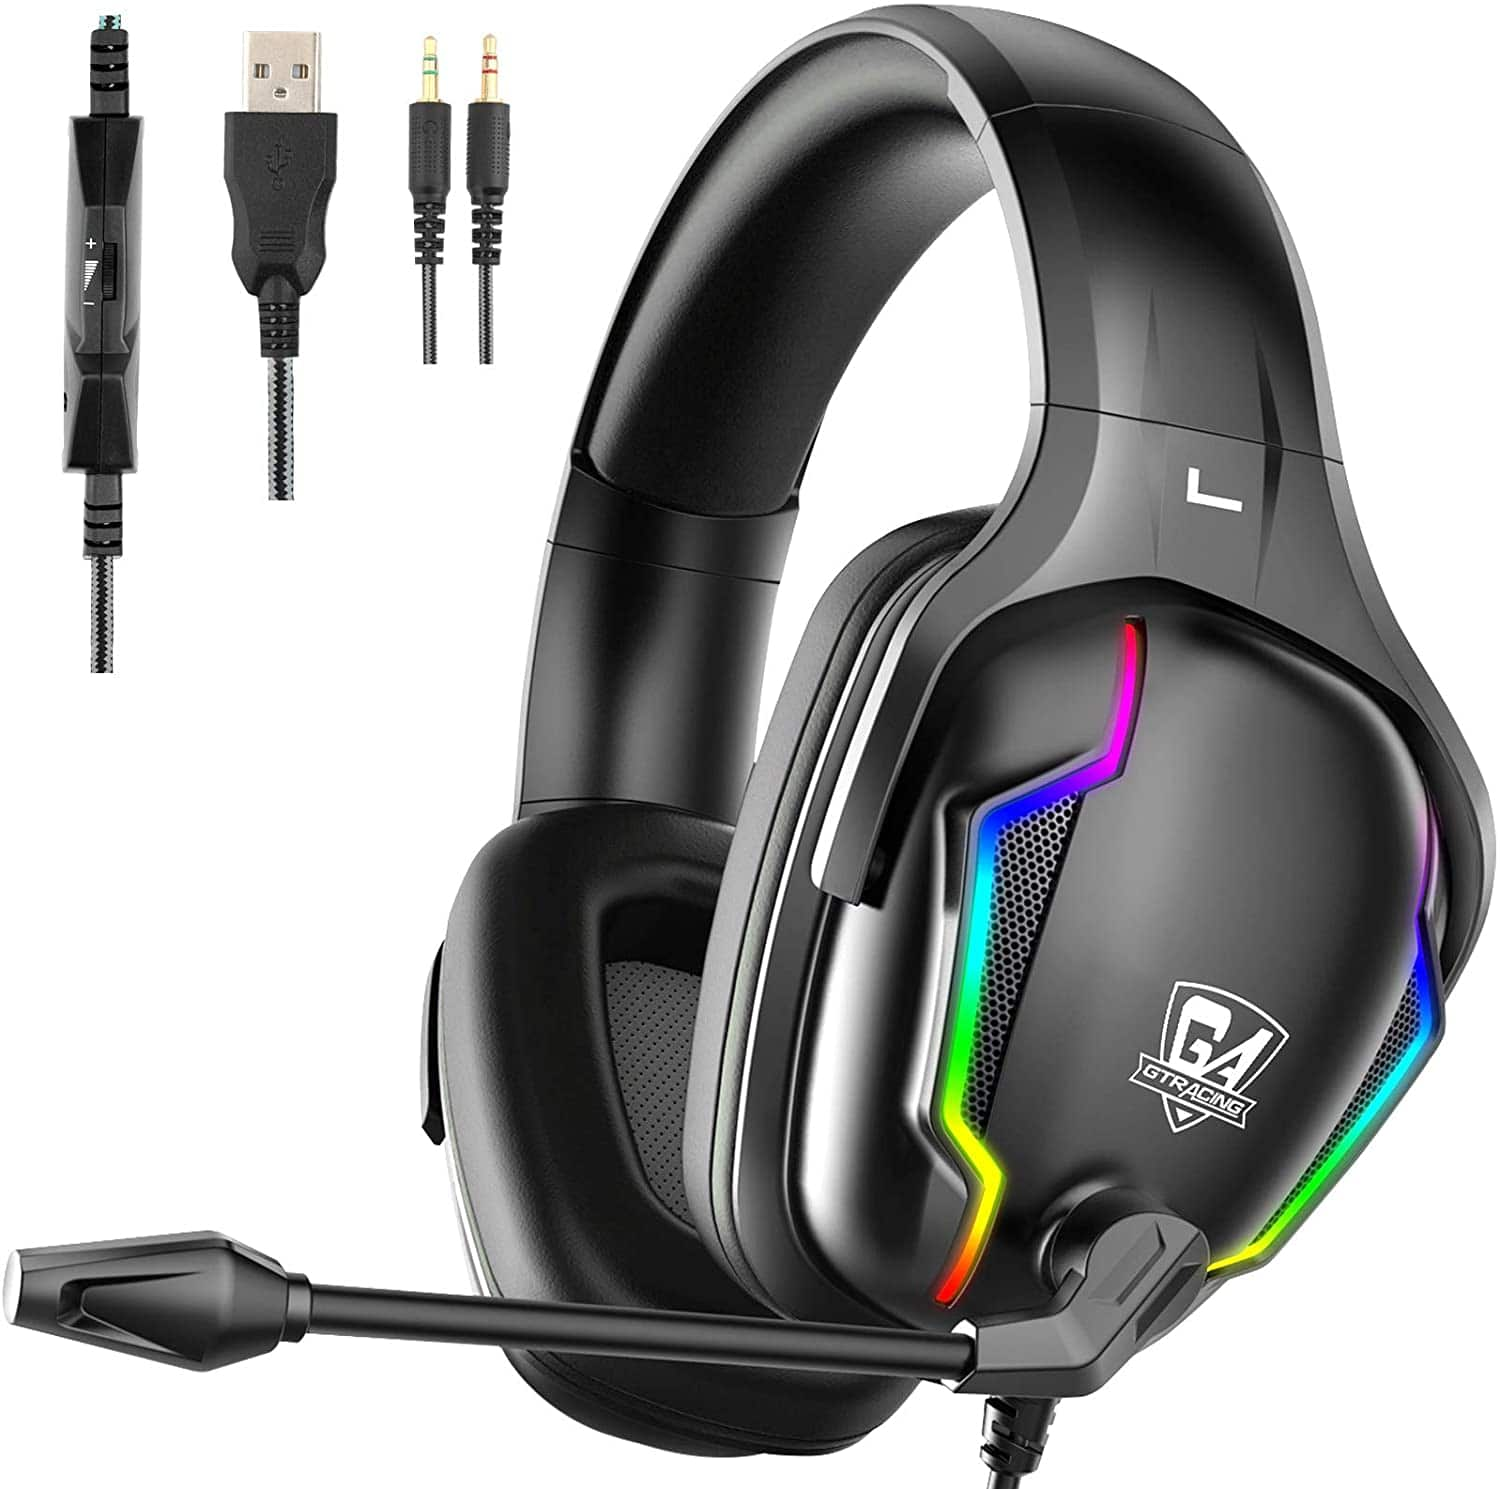 GTRACING Gaming Headset for PC - Computer Headphones with Surround Sound Stereo Noise Canceling Mic for $24.99 + Free Shipping